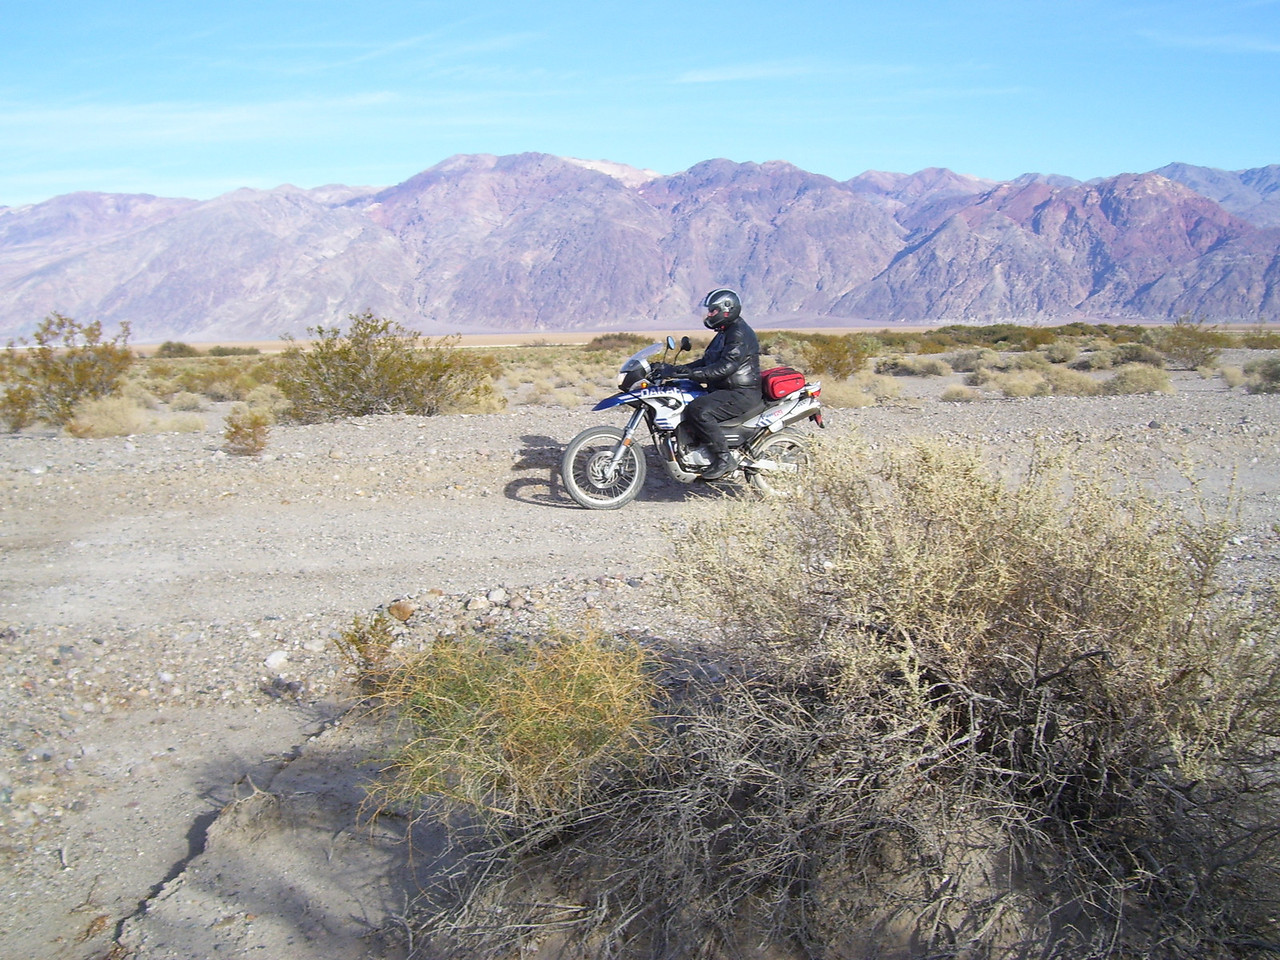 """The BMW """"Dakar"""" worked great. An ideal bike for this type of ridding."""